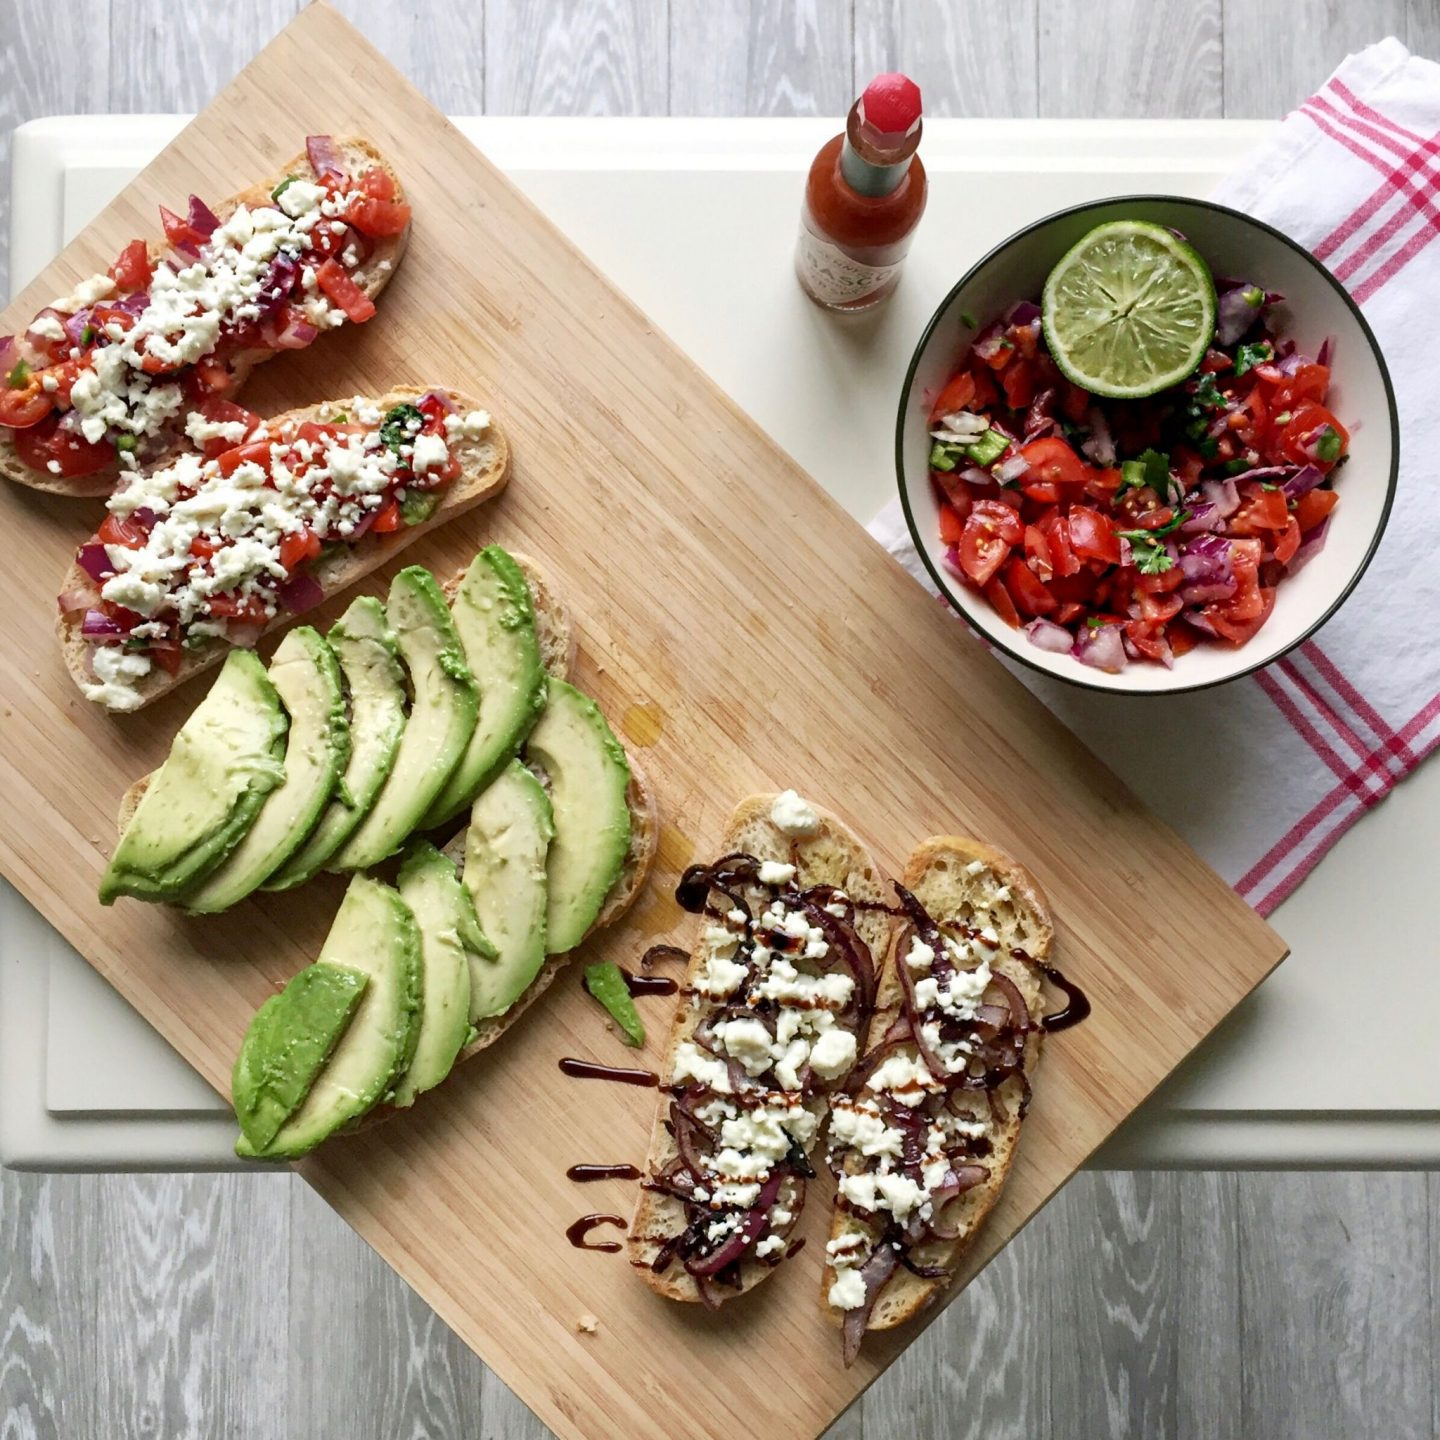 Did Someone Say Brunch? Triple Threat Brunch Toasts